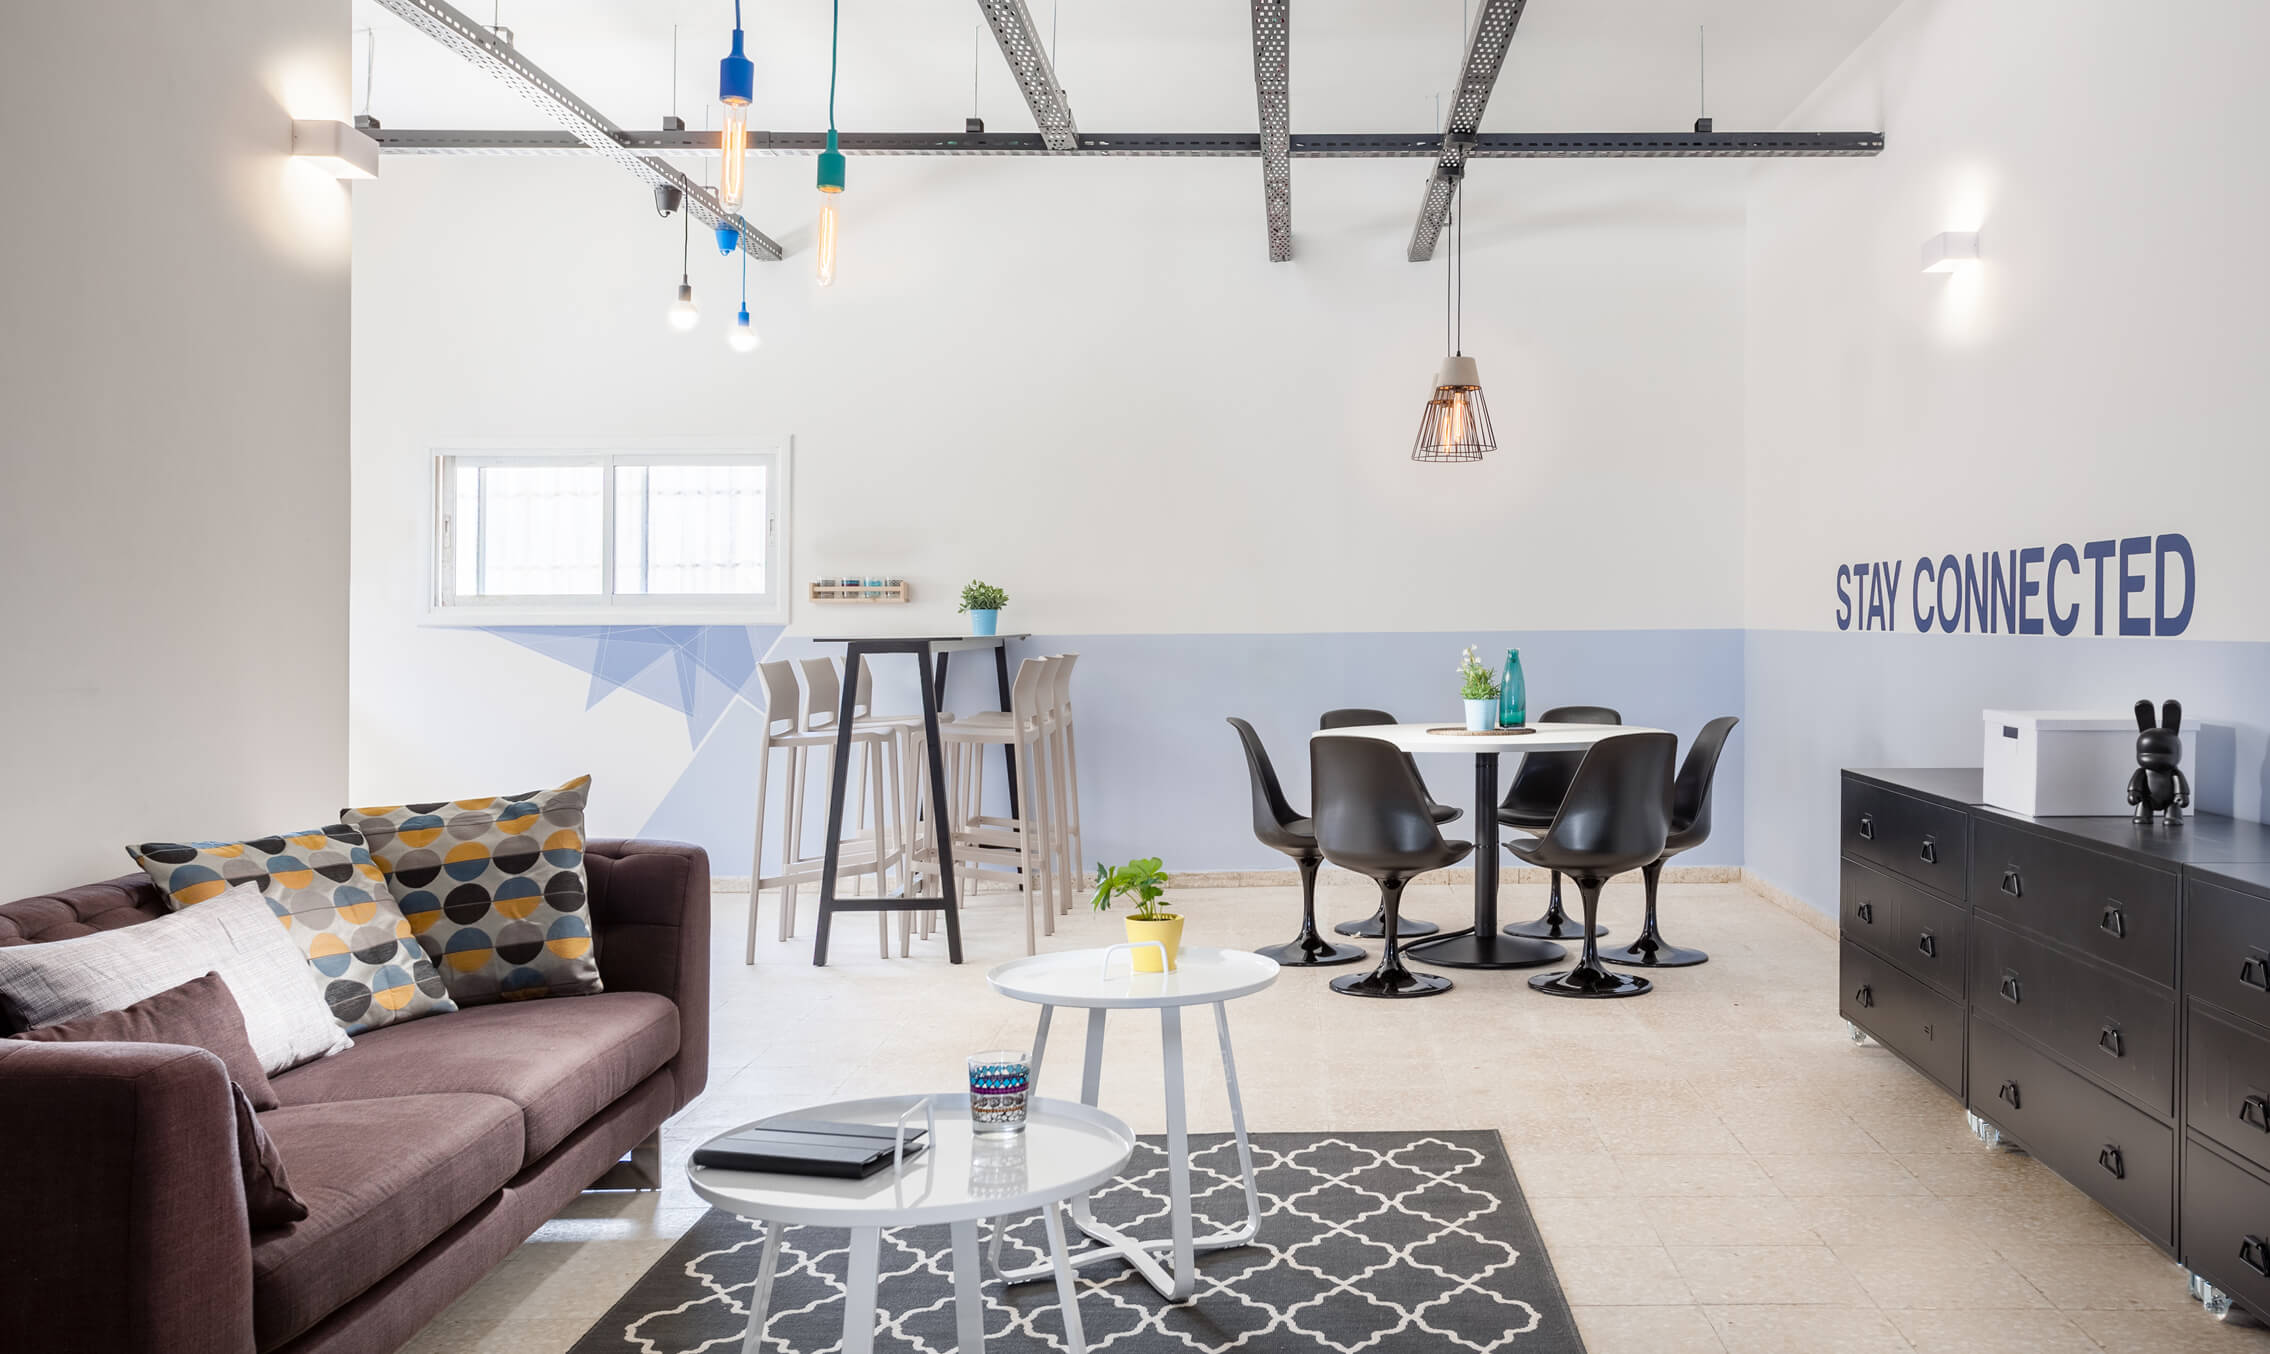 NetGev - Technological Hubs and co-working spaces